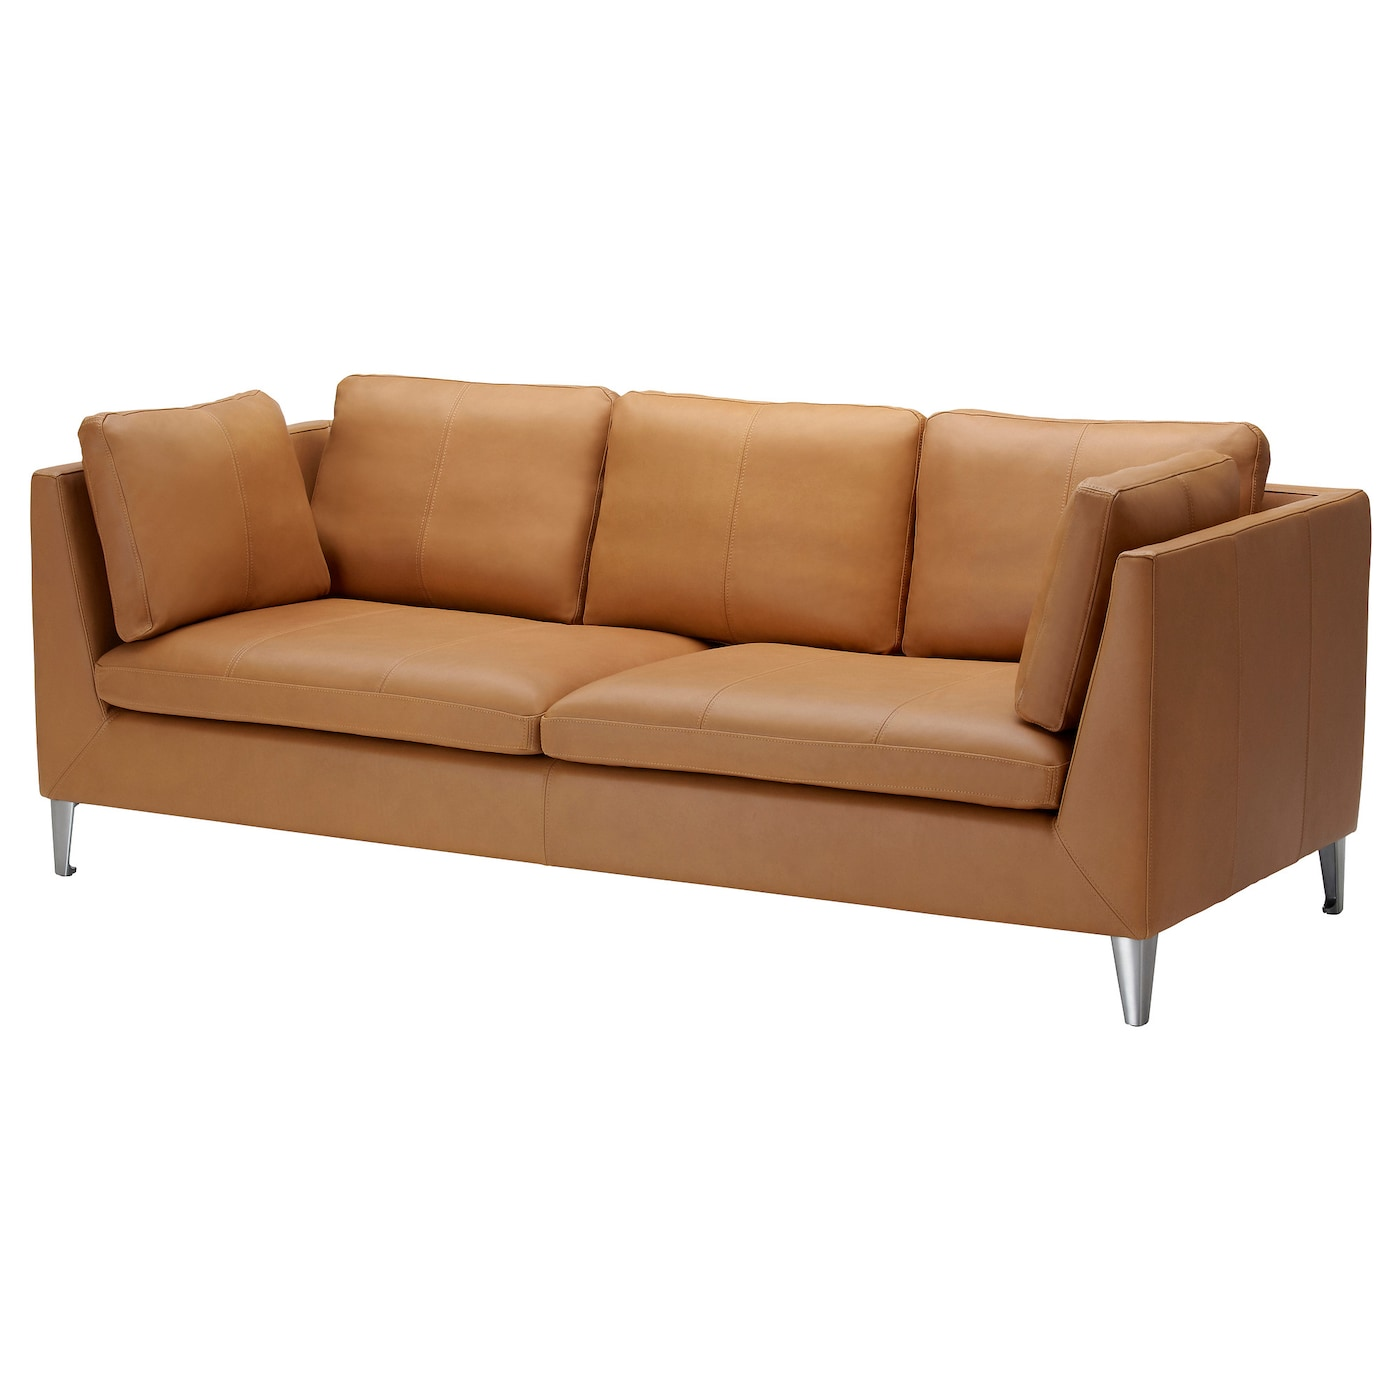 Stockholm three seat sofa seglora natural ikea for Ikea sofa set